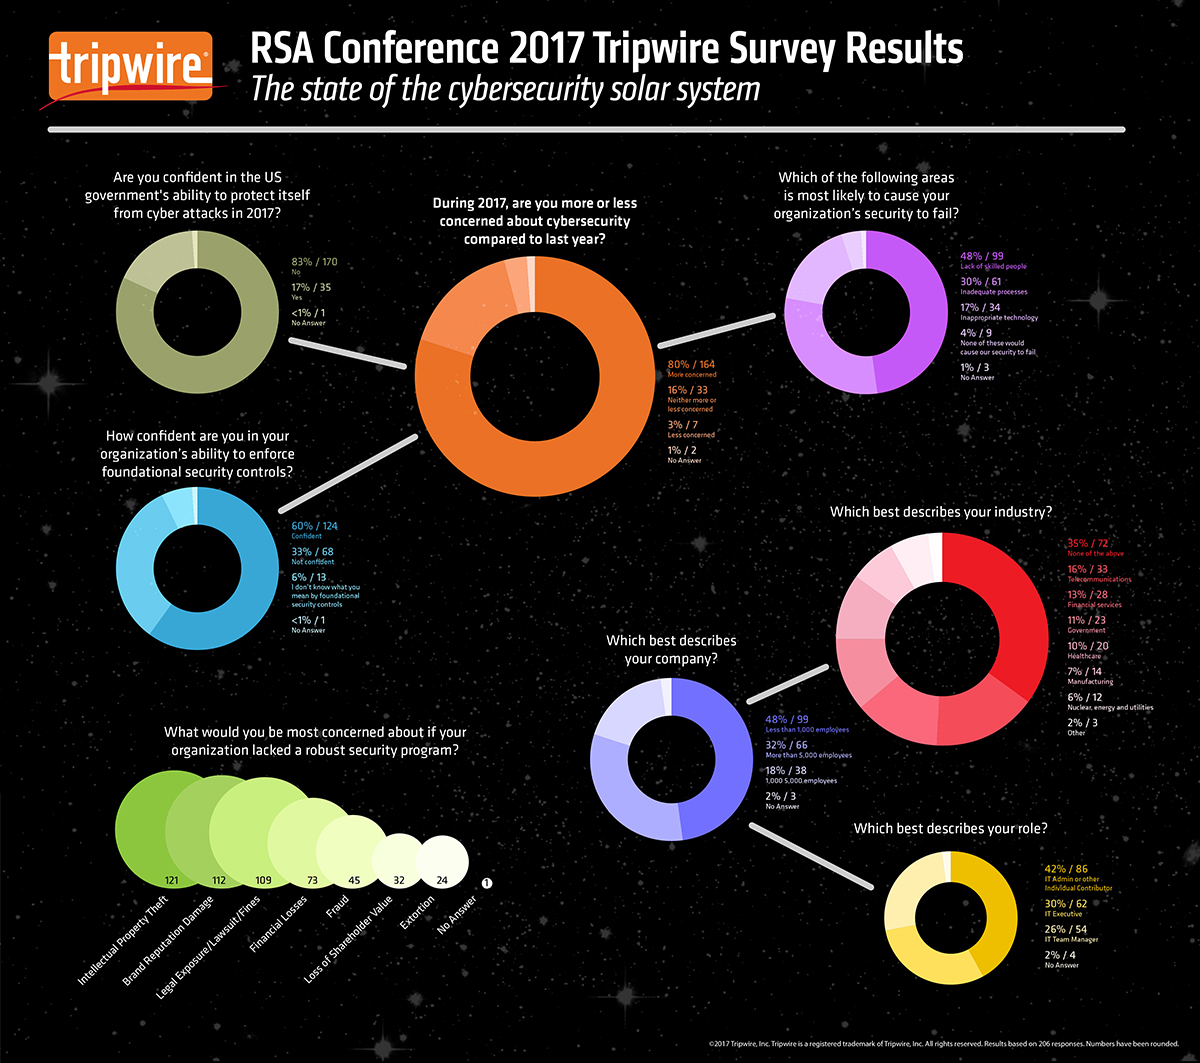 A Tripwire survey gauged RSA Conference attendees' concerns for their own organizations and found there are rising concerns for cybersecurity in general.